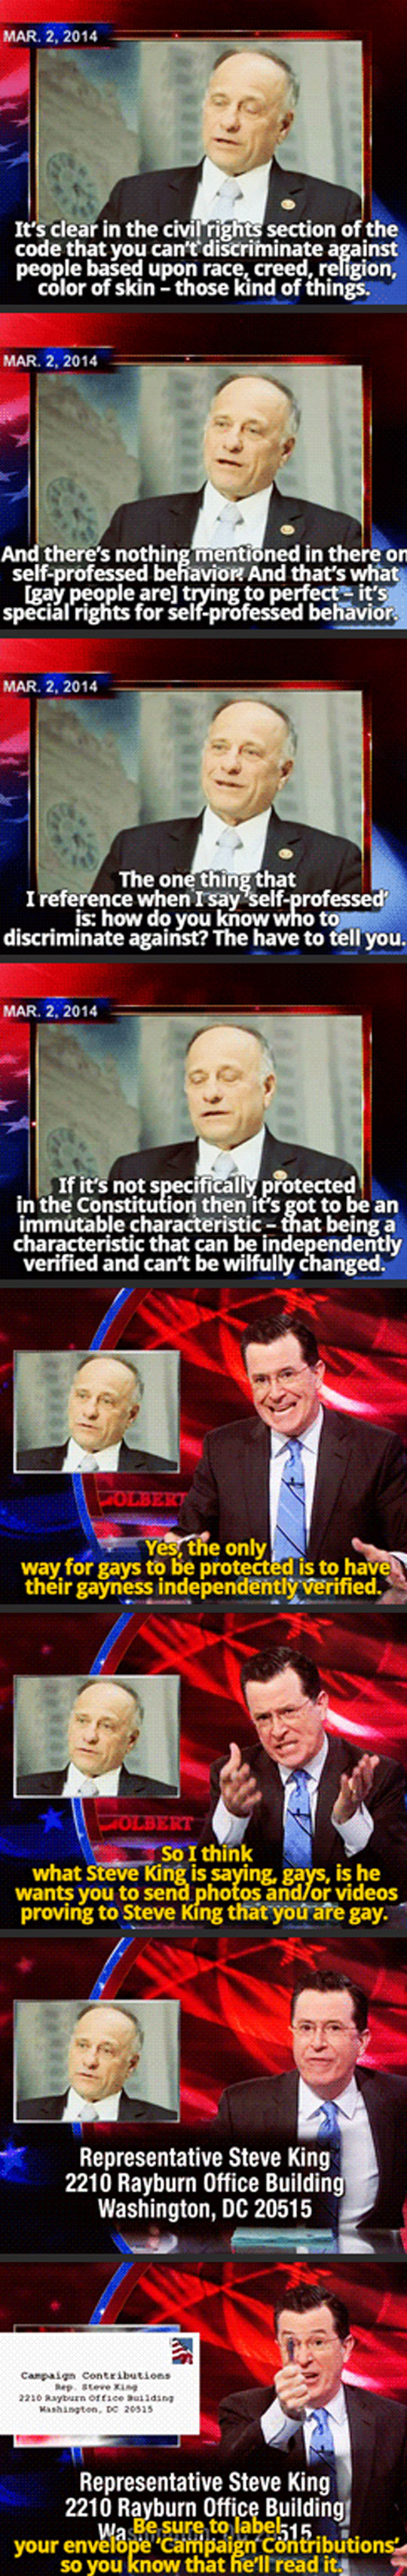 Stephen Colbert Gets It